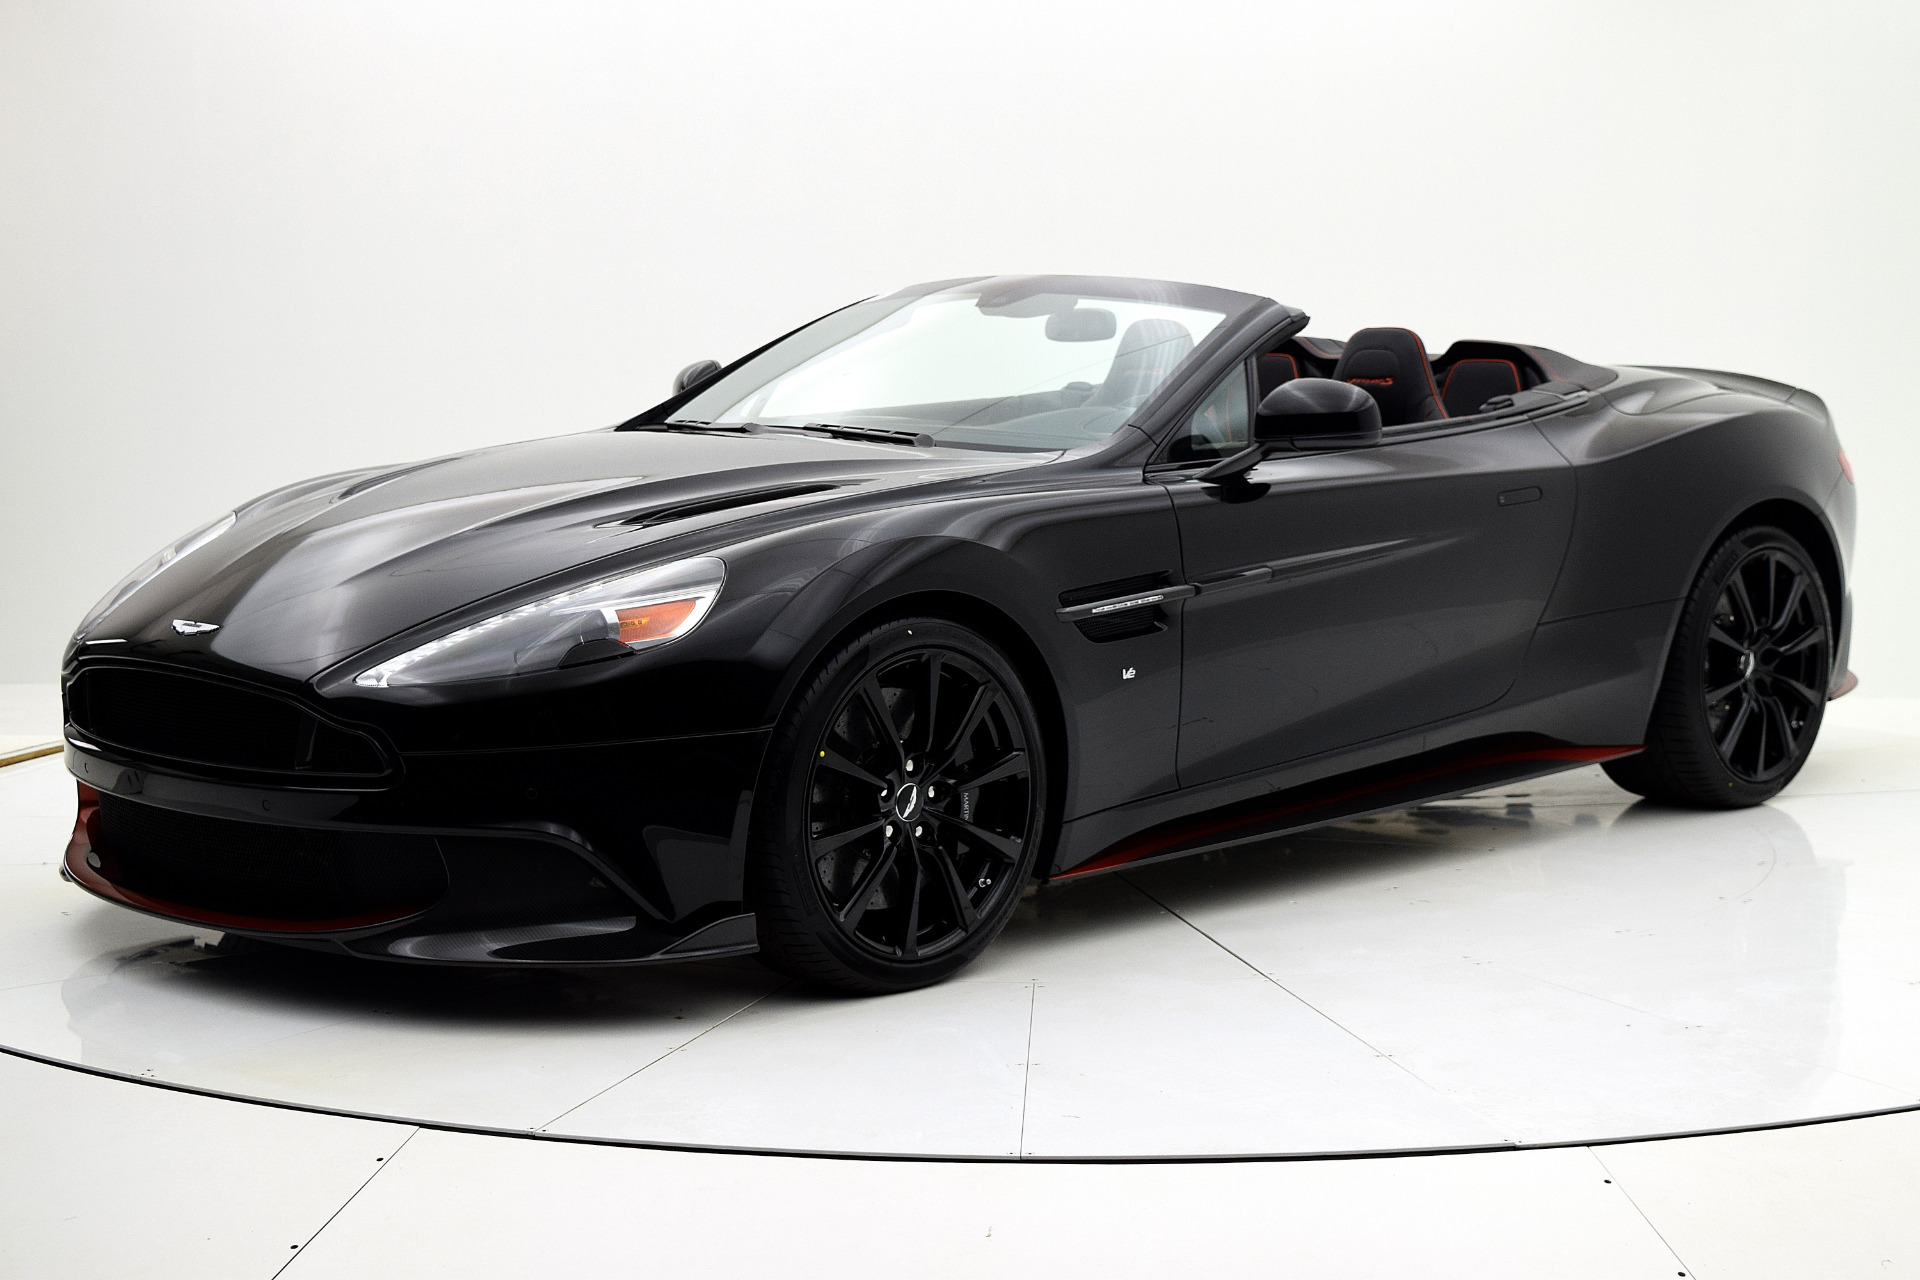 Aston Martin Vanquish 2018 For Sale $352204 Stock Number 18A109